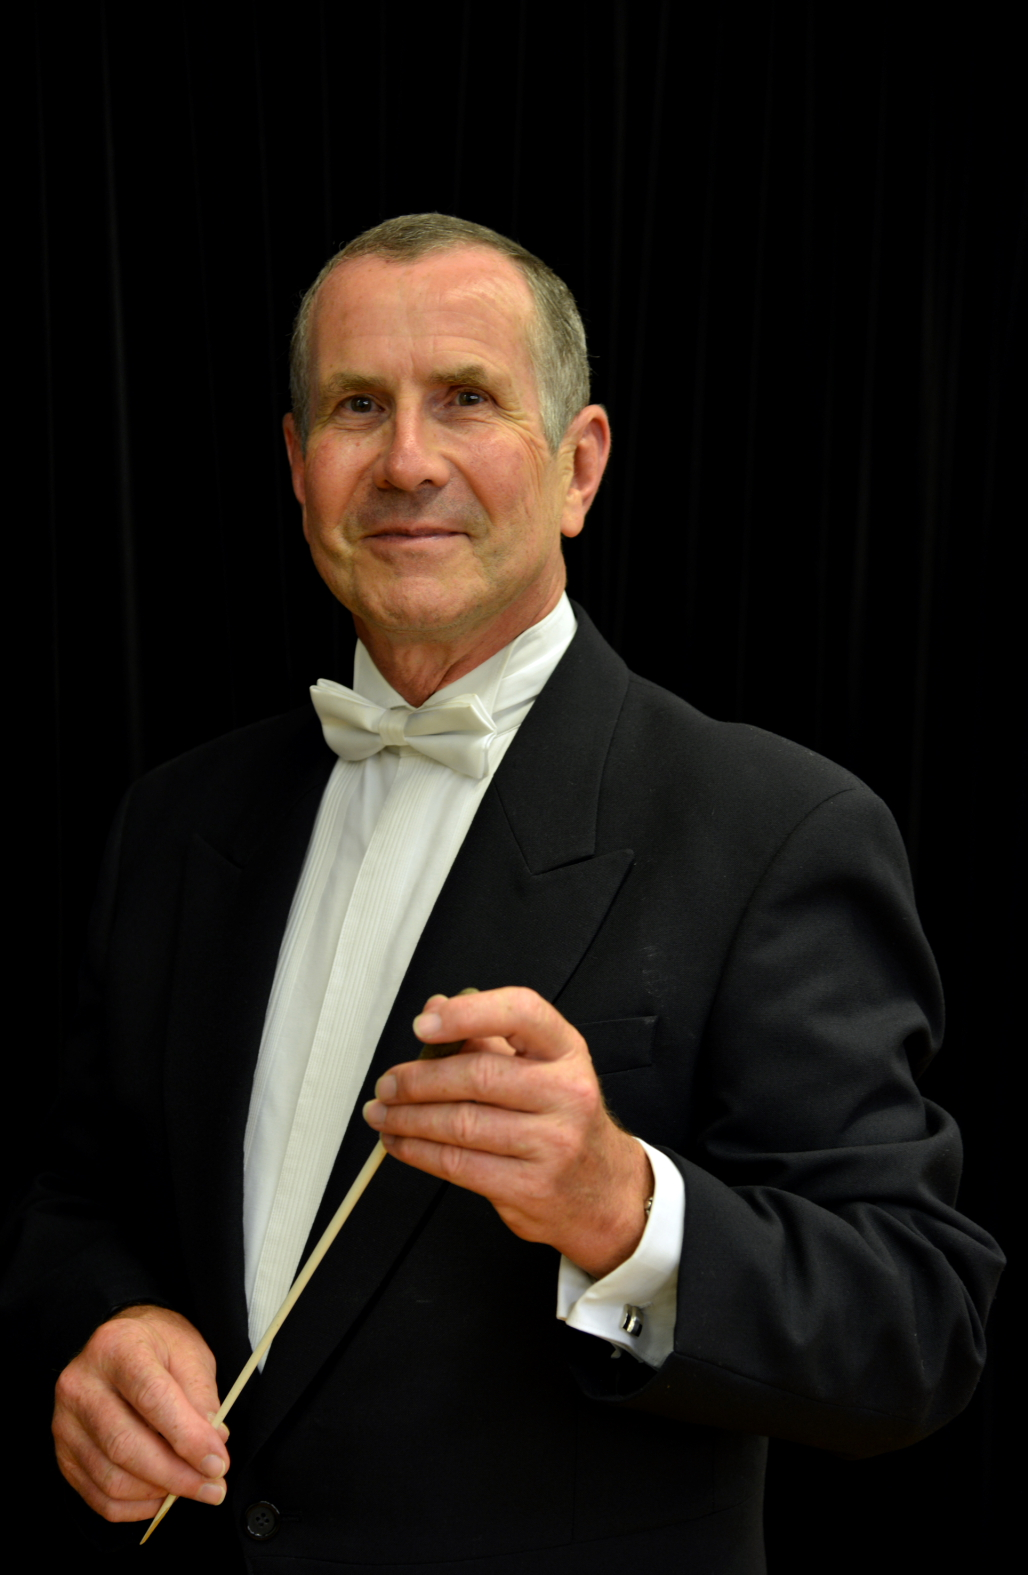 Adrian King conductor